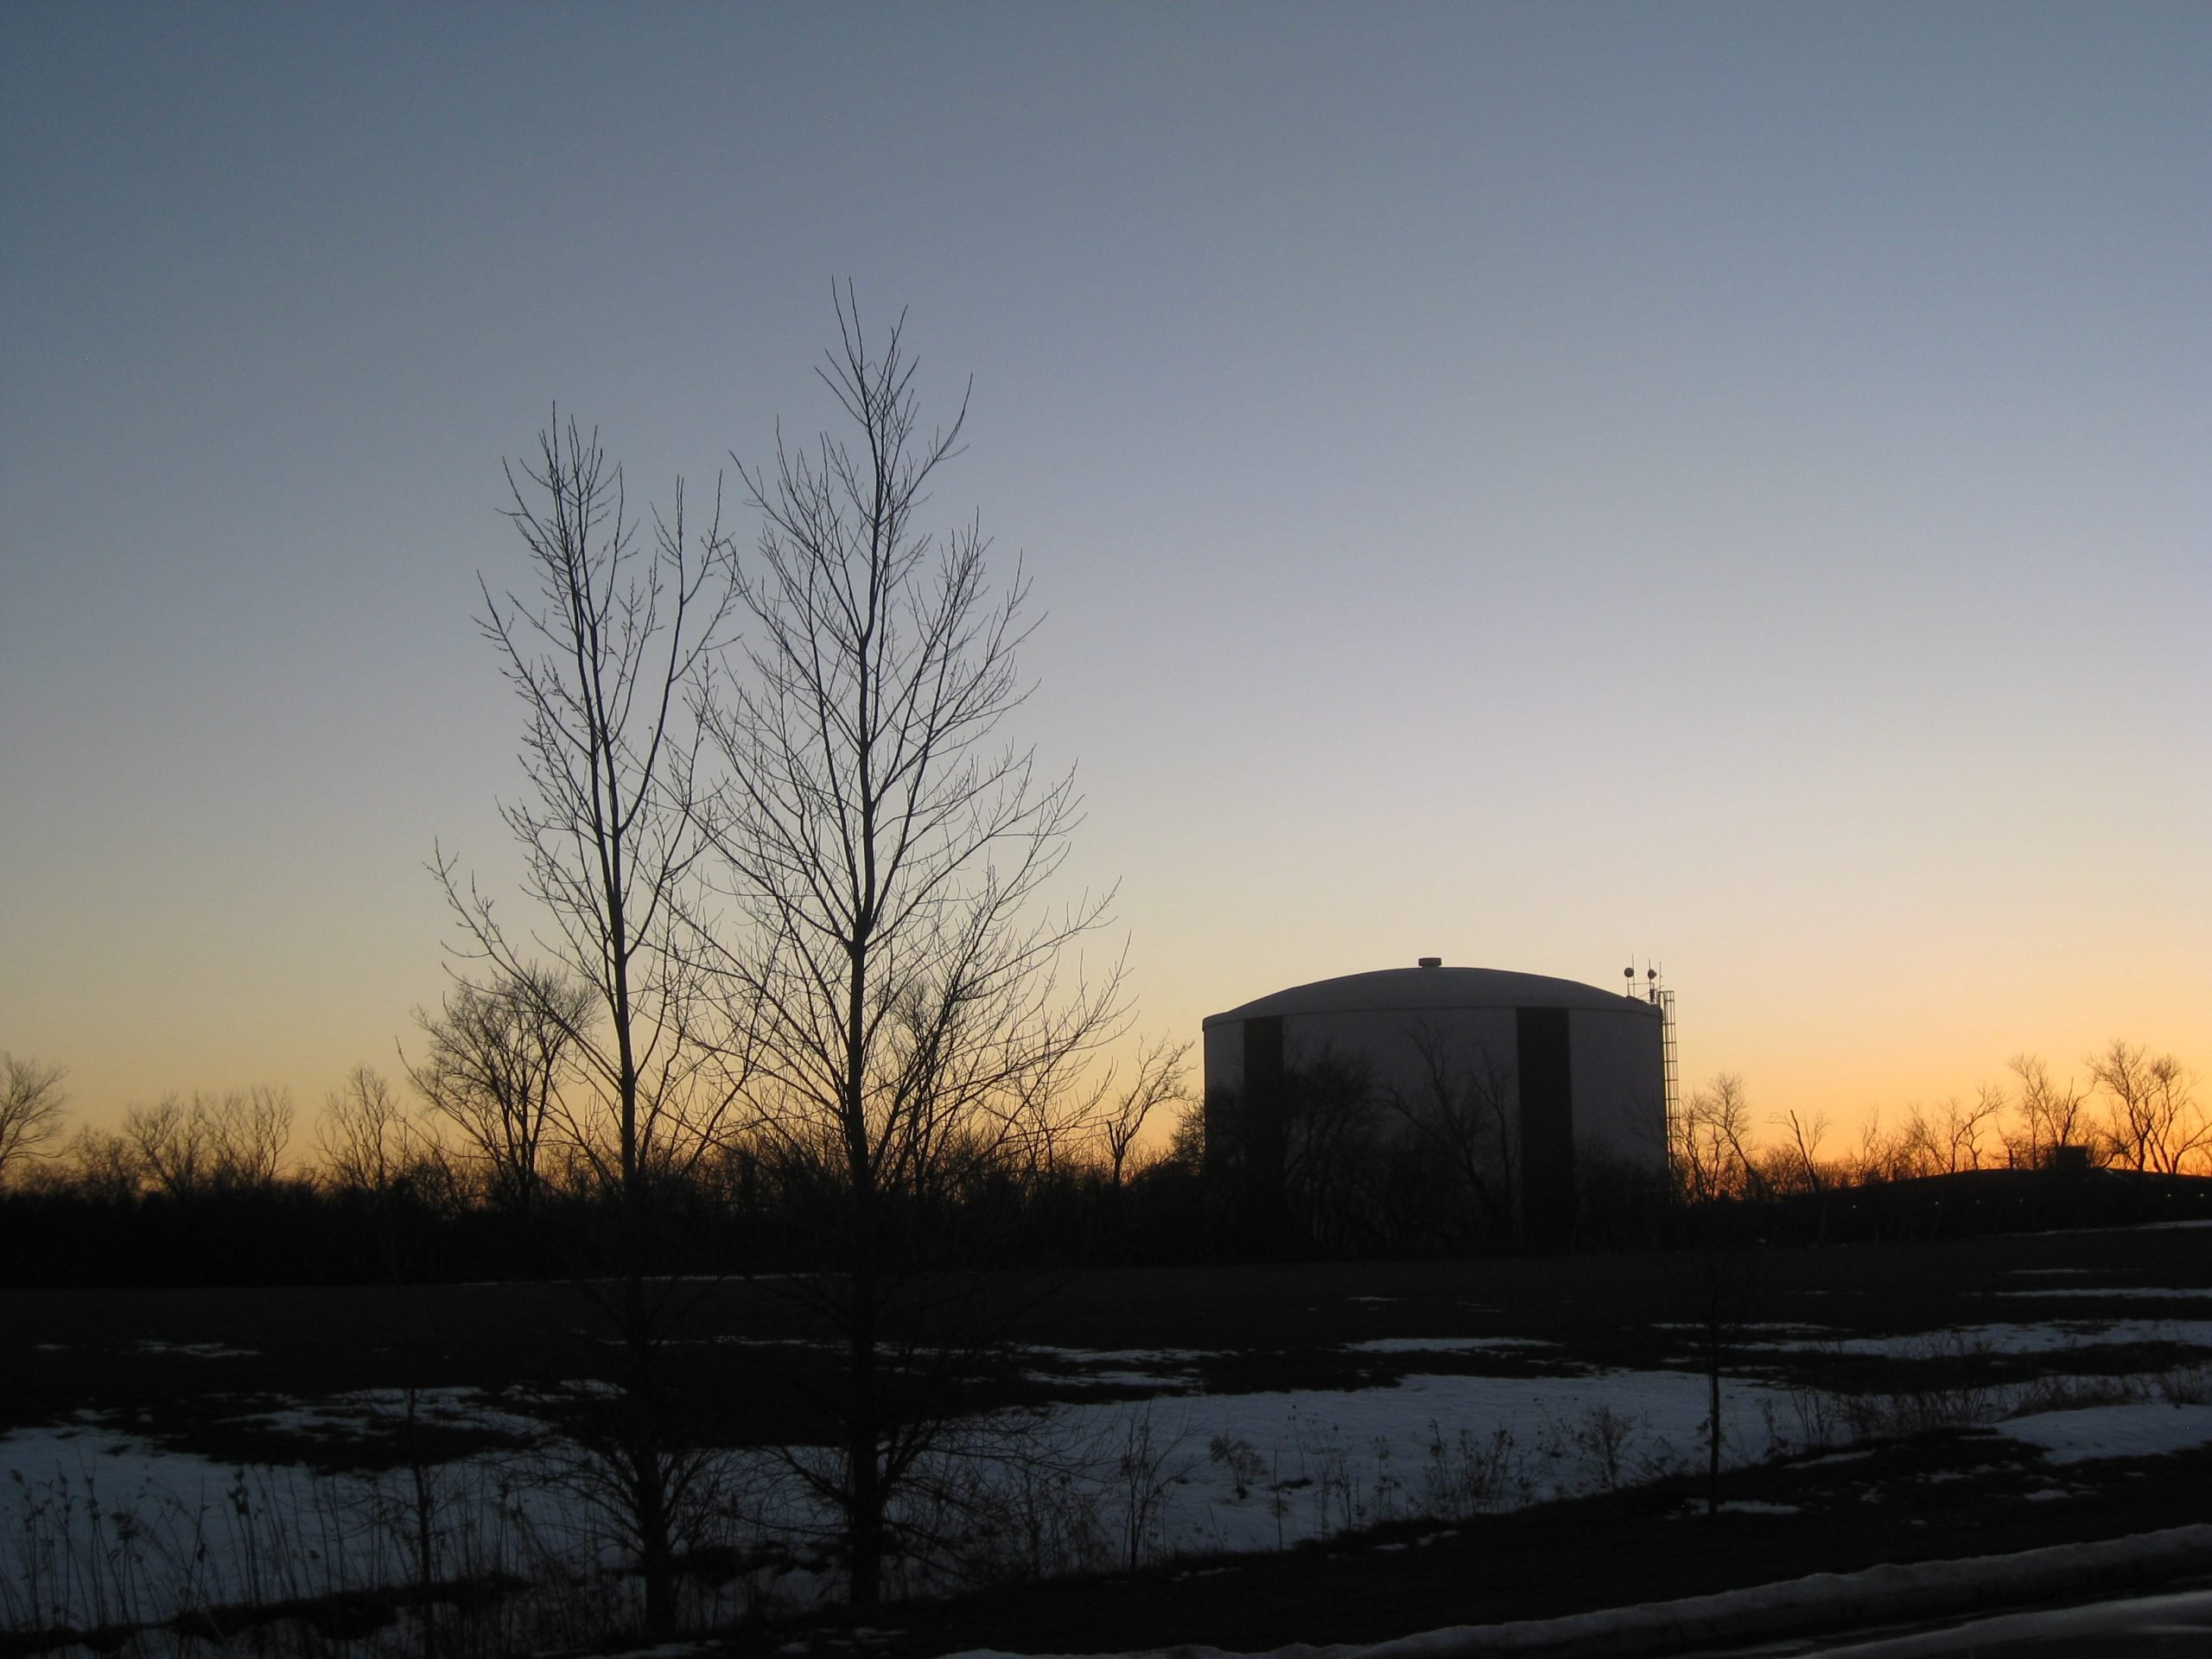 Sunset from my mother's place at the assisted living residence in Racine, Wisconsin. Yes, they still have silos, farms, and dairy cows...